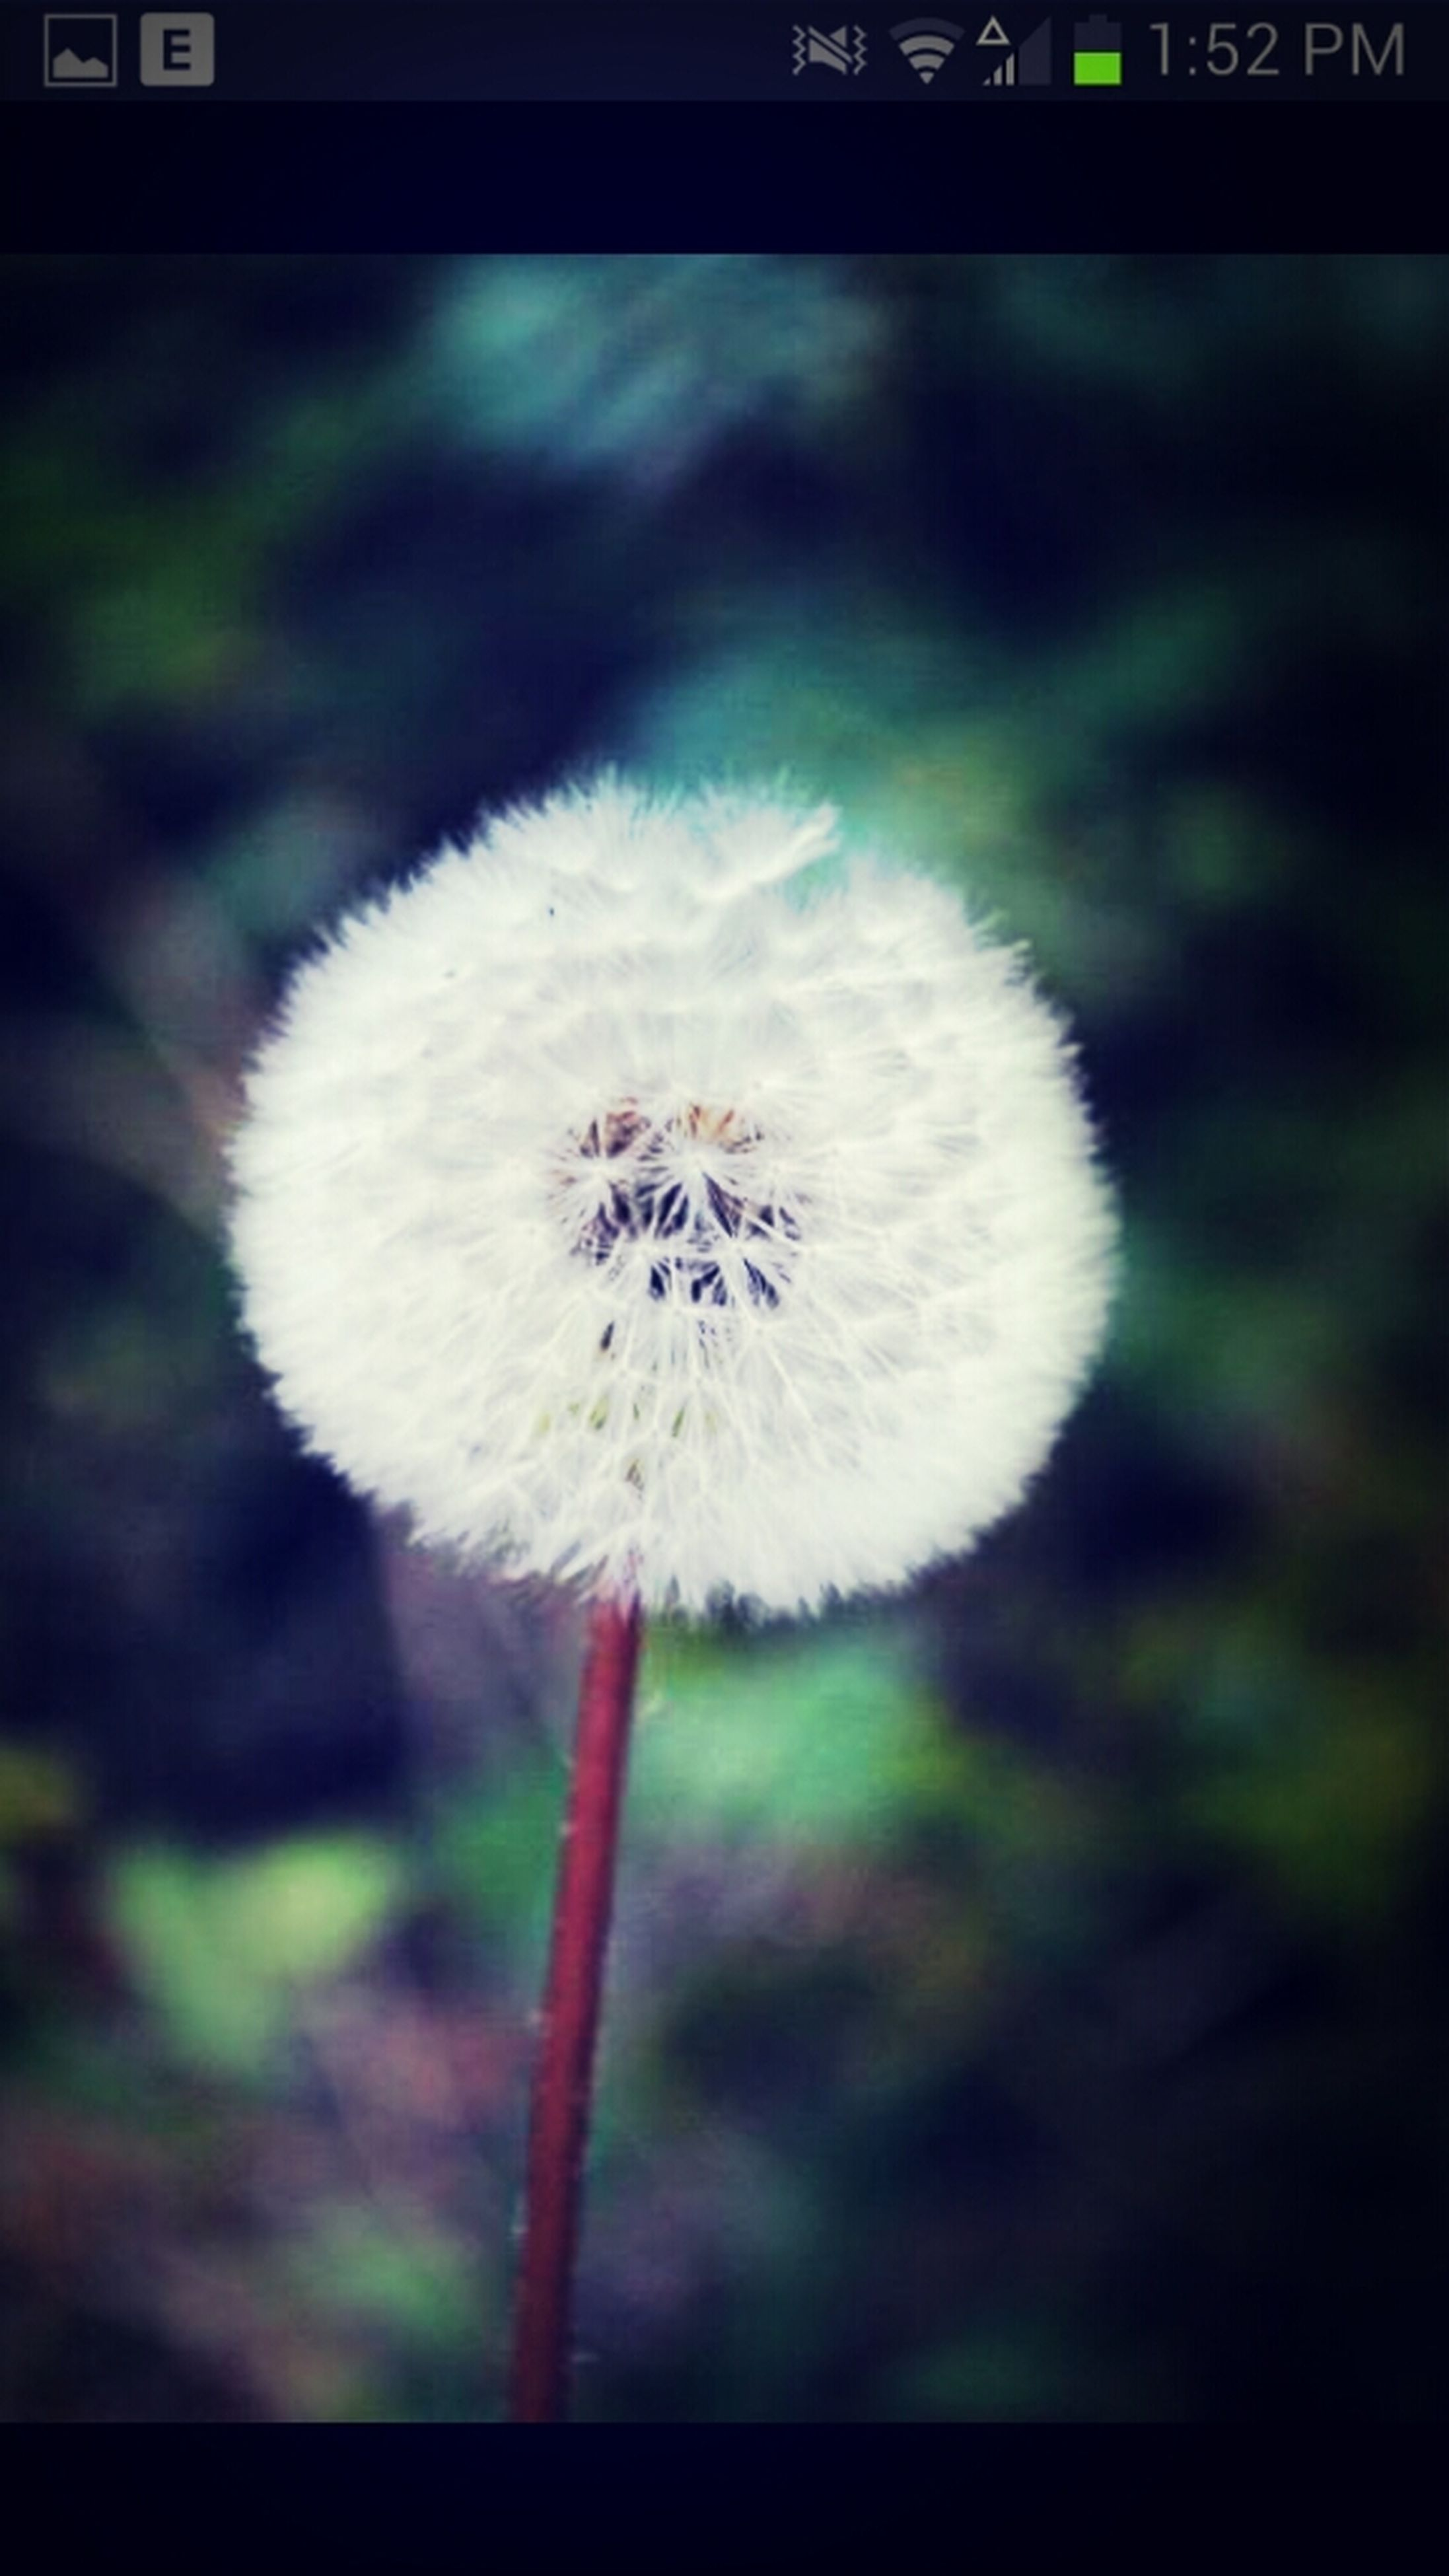 flower, dandelion, fragility, flower head, growth, freshness, focus on foreground, close-up, white color, beauty in nature, single flower, nature, stem, softness, white, petal, selective focus, plant, outdoors, auto post production filter